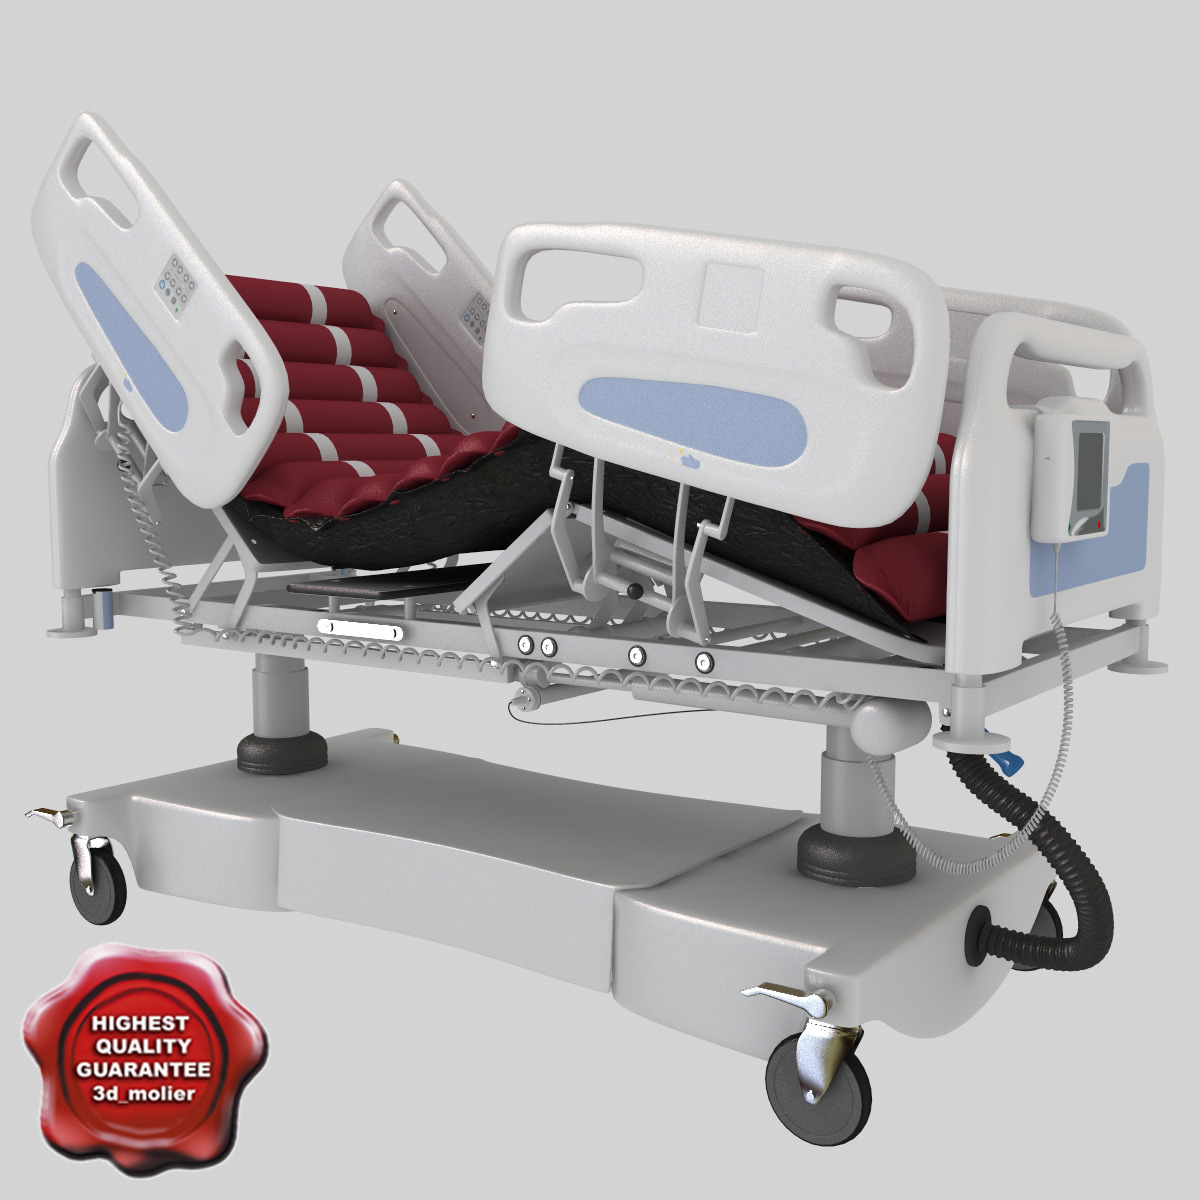 icu multi function hospital bed max